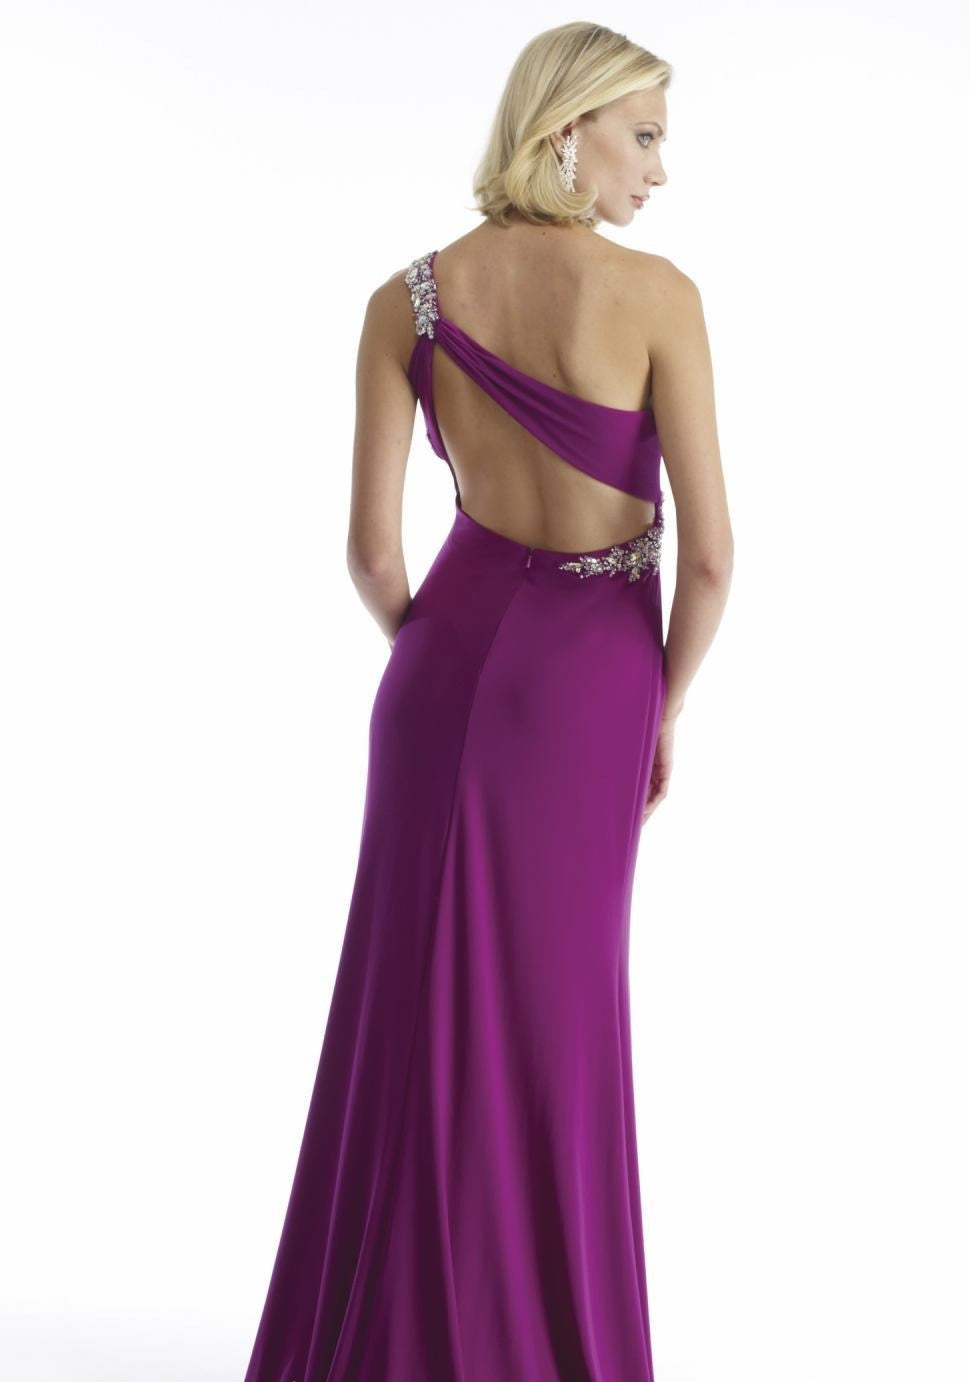 Morrell Maxie 13748 Asymmetrical Purple Gown